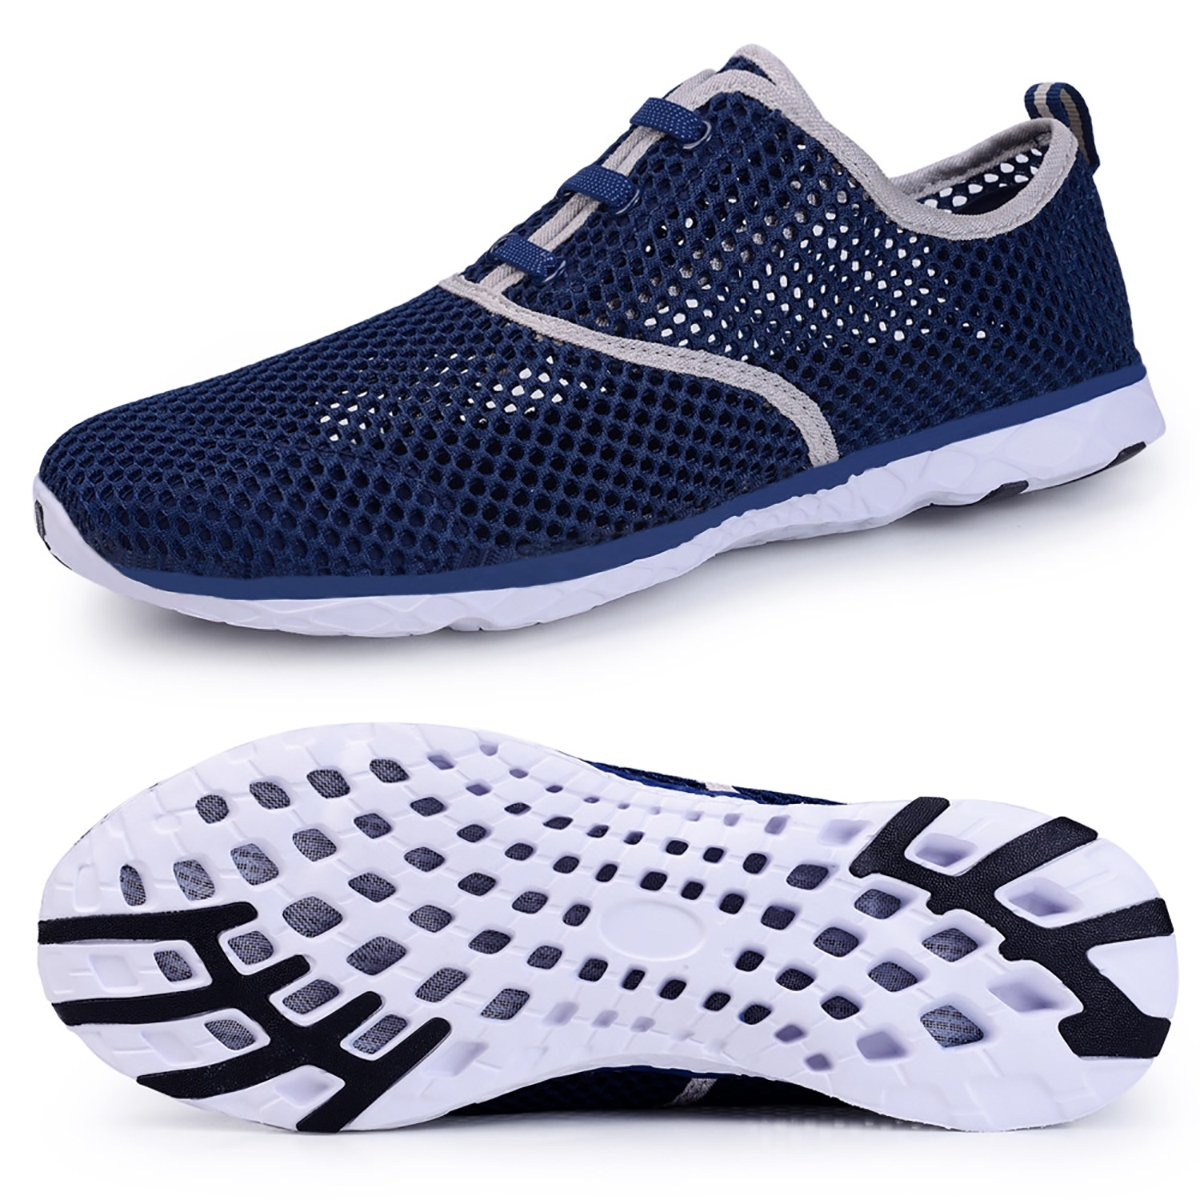 Water Shoes for Men Quick Drying Aqua Shoes Beach Pool Shoes (Navy, 41)